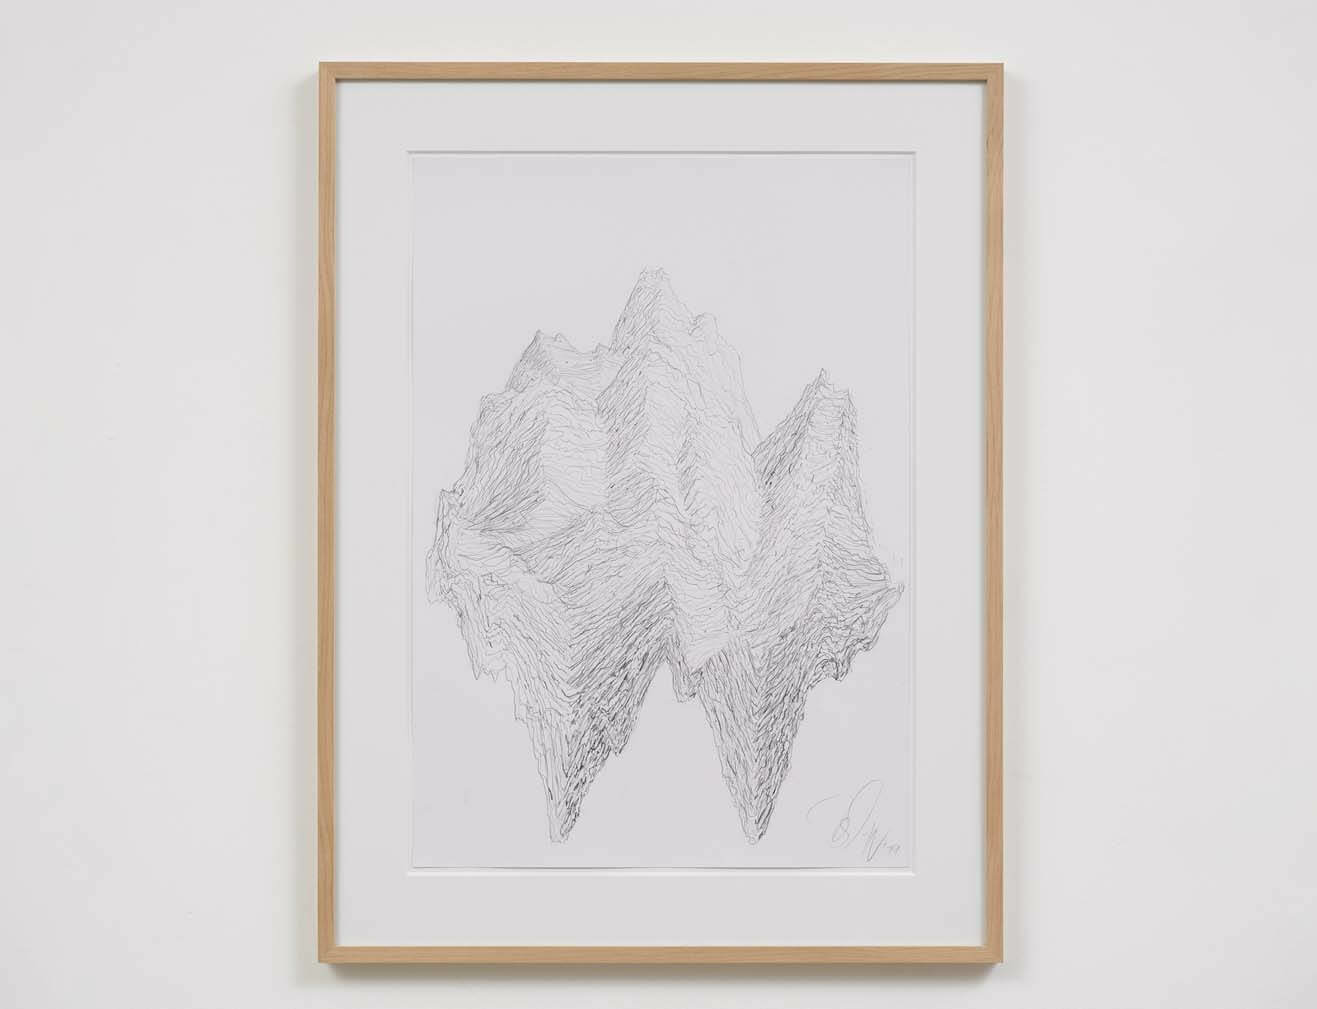 Exhibition of drawings and graphic works by Tony Cragg opens in Berlin